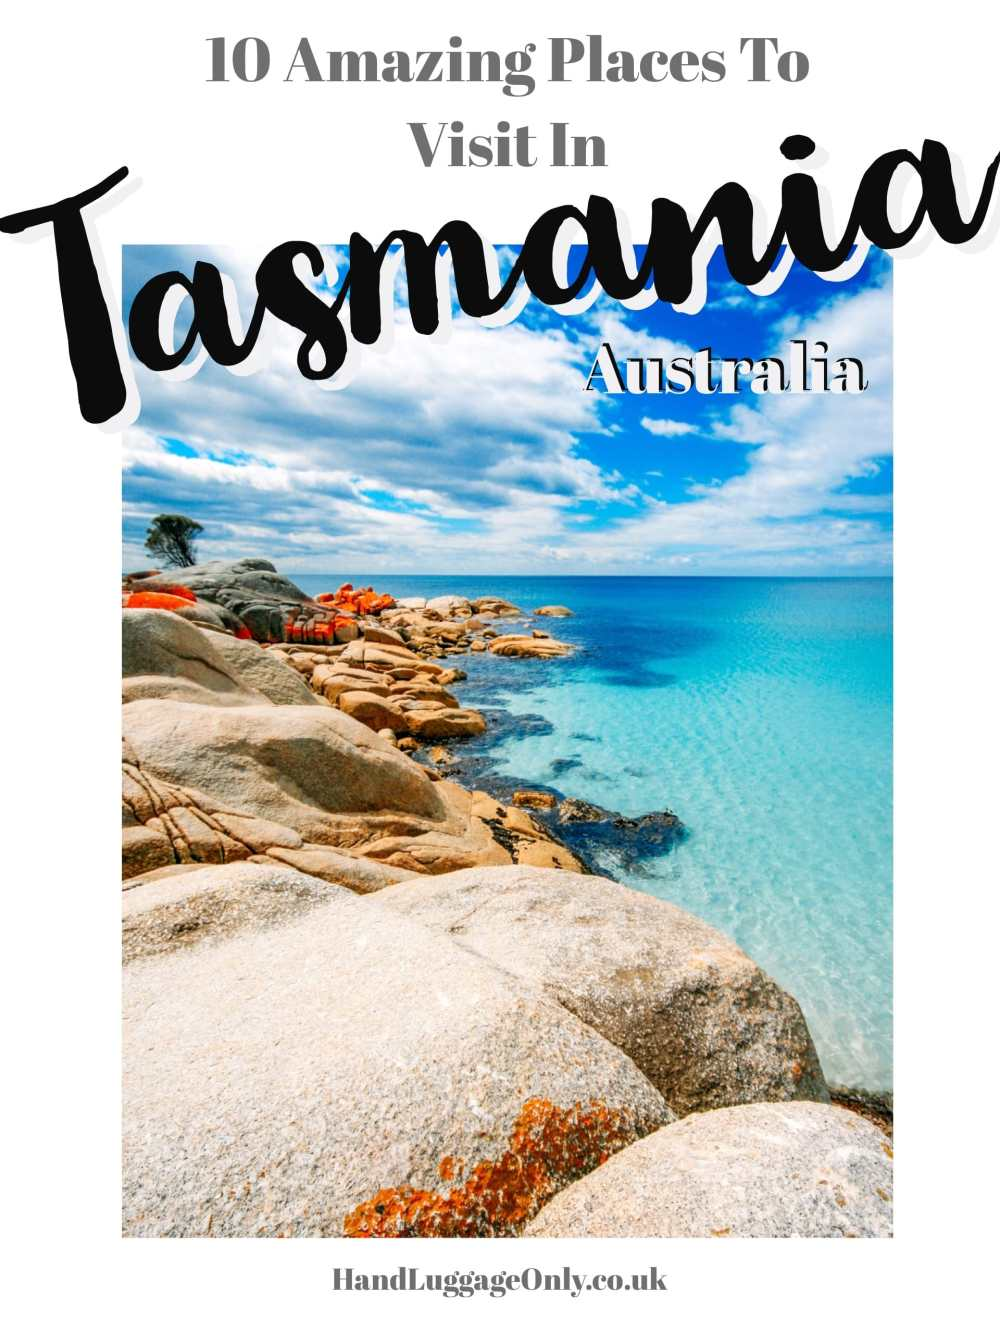 10 Amazing Places To Visit In Tasmania, Australia (16)